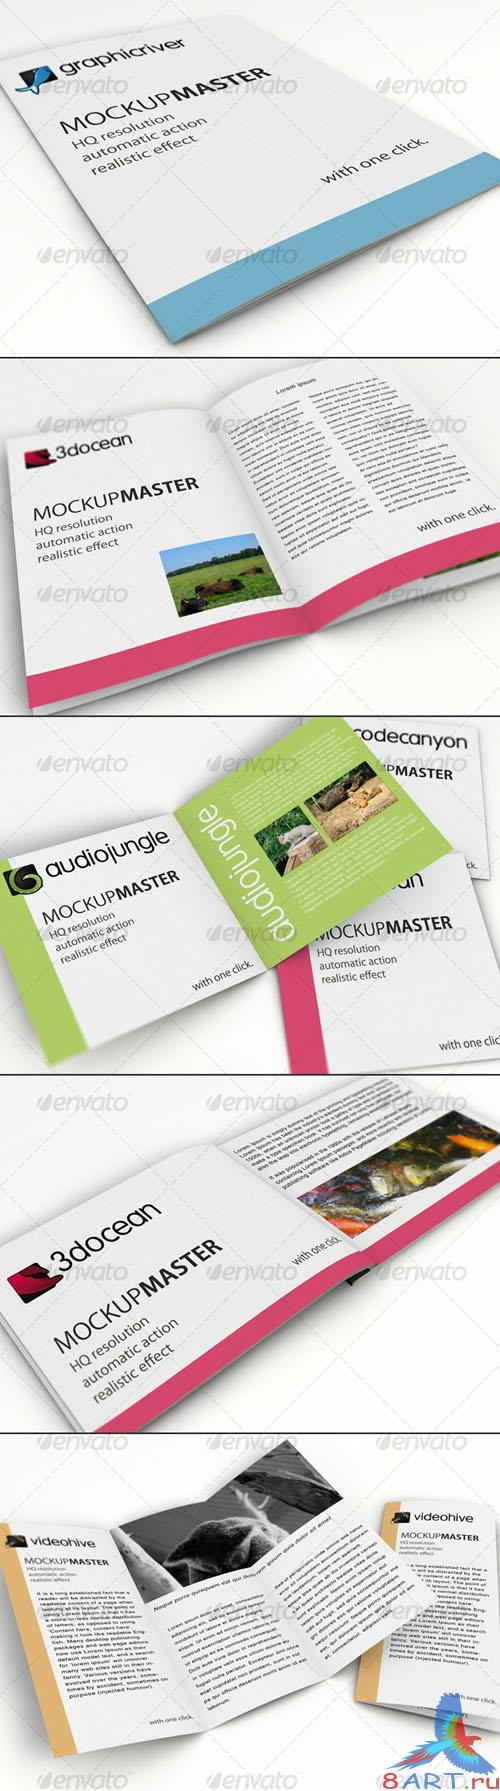 GraphicRiver Mock-up Master - ID series 01